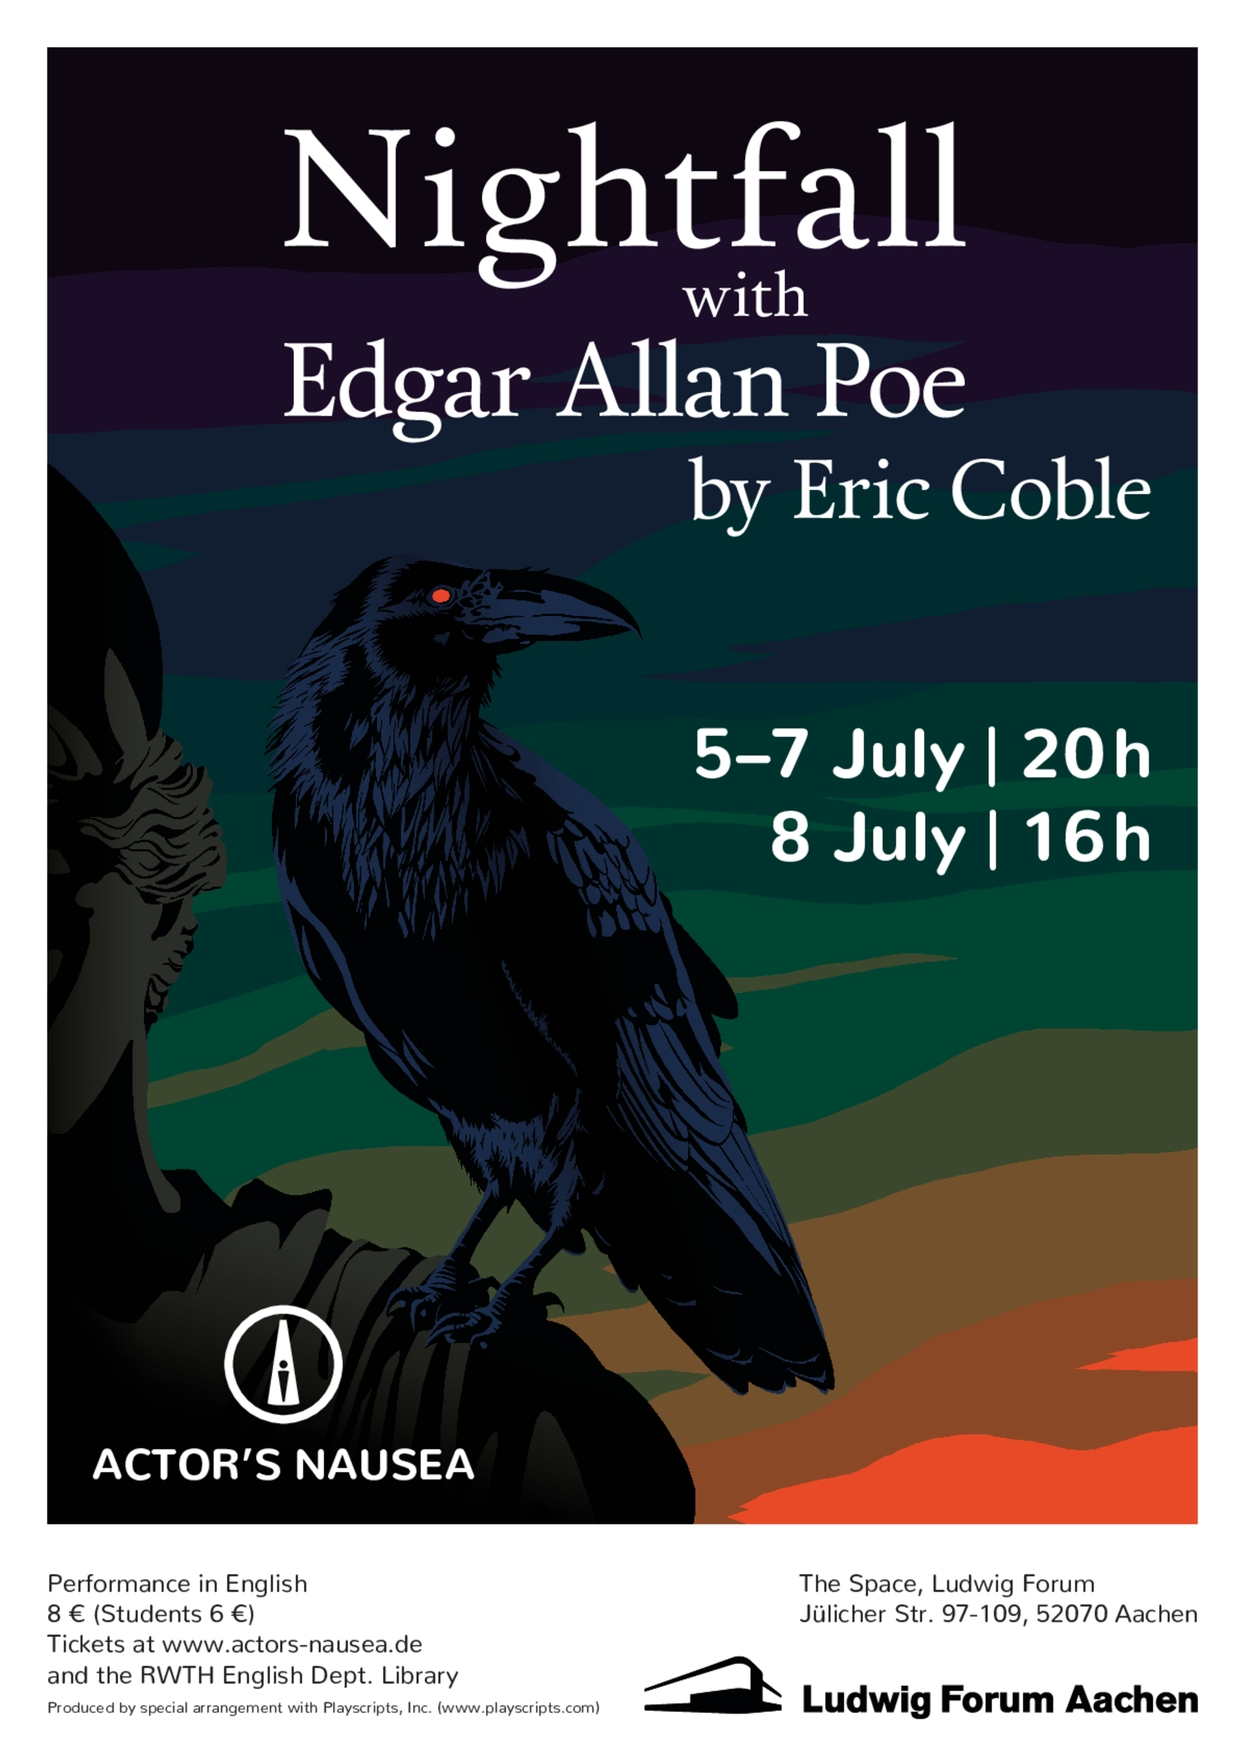 Nightfall with Edgar Allan Poe - Poster by Lilian Kojan